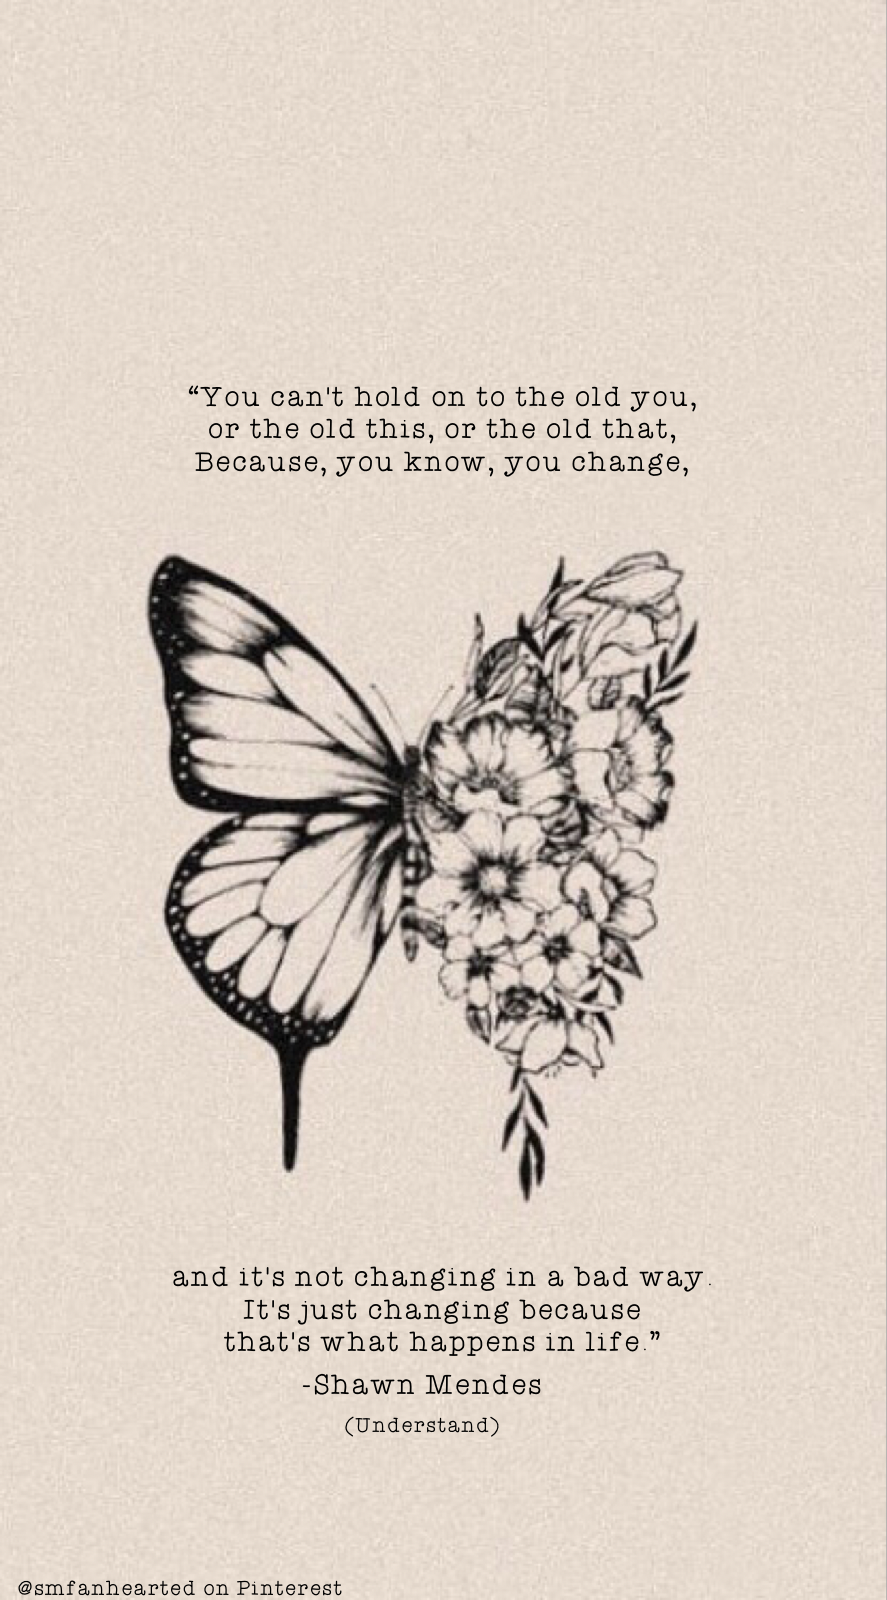 Shawn Mendes butterfly tattoo lock screen with lyrics from